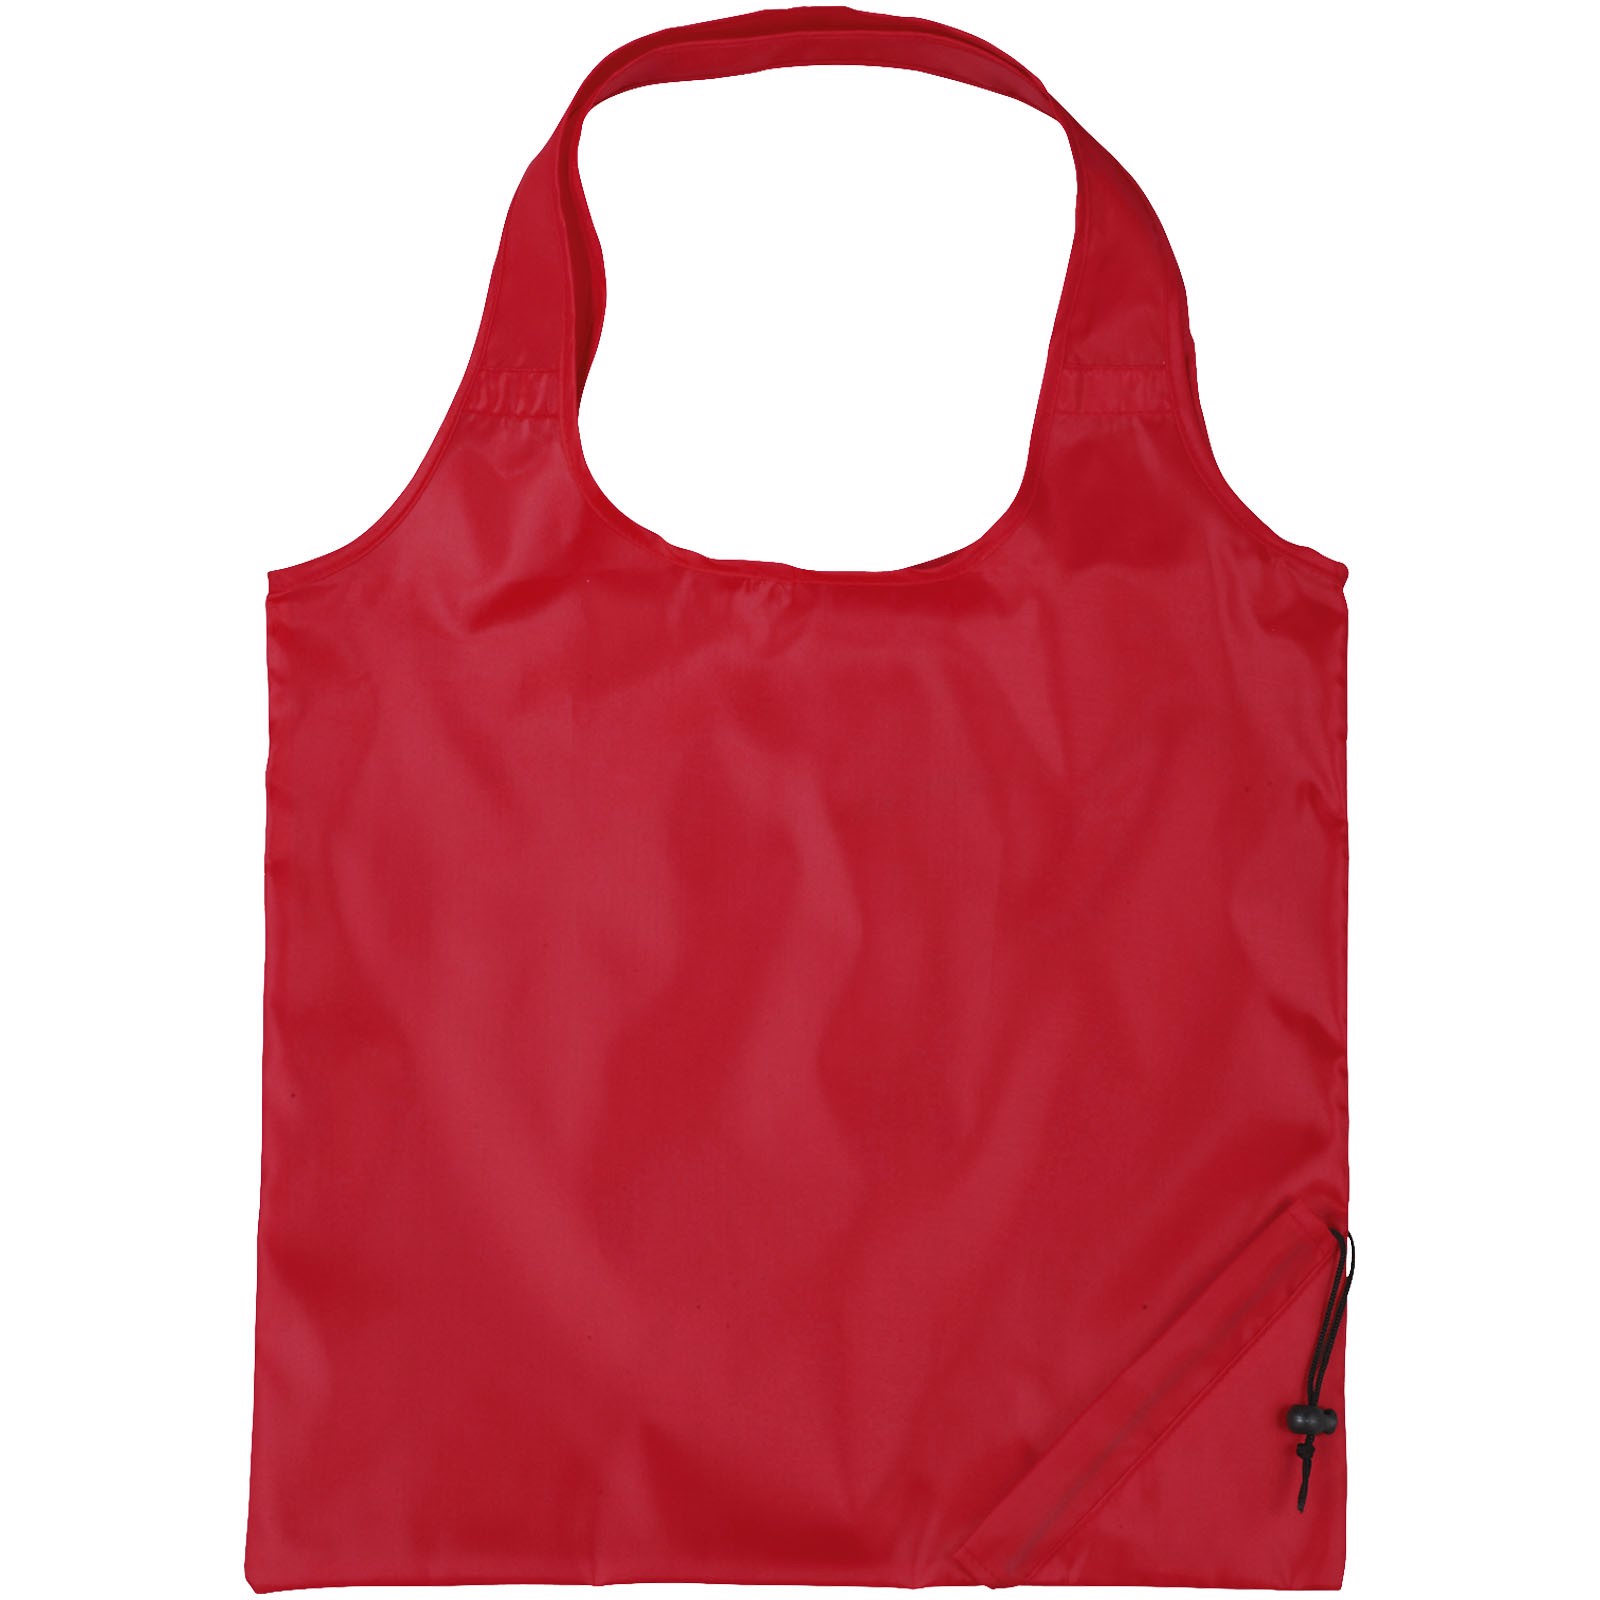 Bungalow foldable tote bag - Red